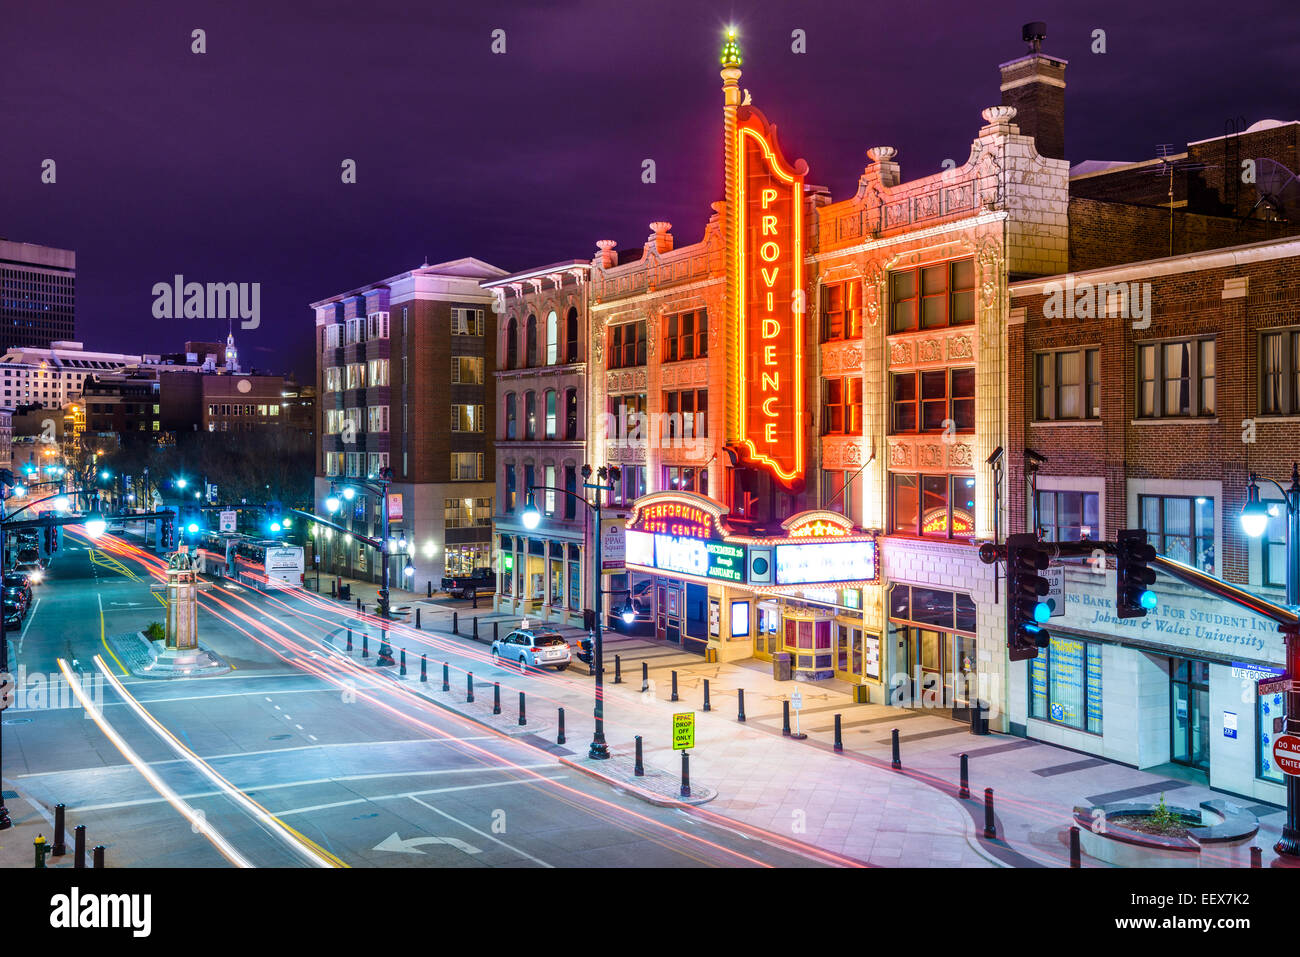 Providence Performing Arts Center in Providence, Rhode Island. - Stock Image